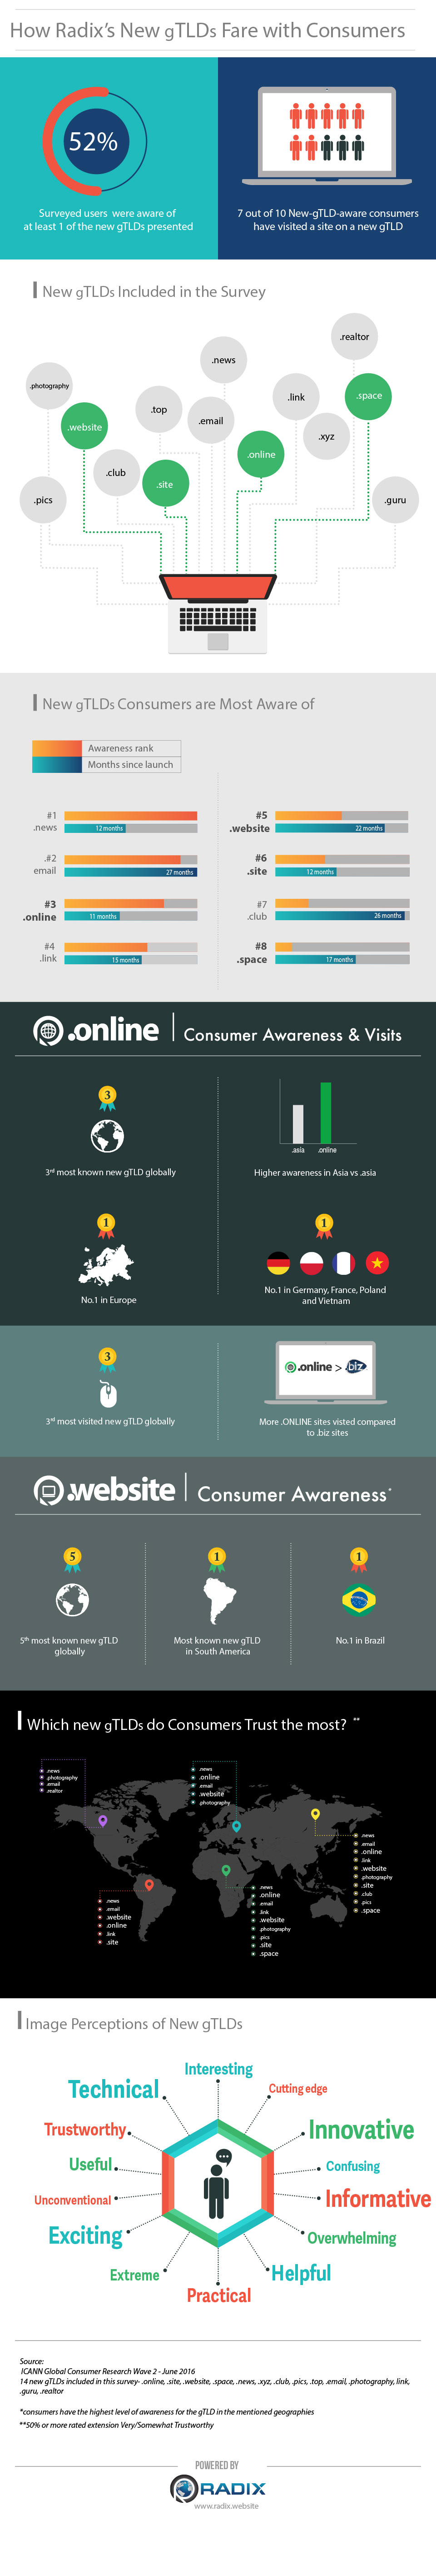 Consumer-Awareness-Infographic-radix-new-TLDs